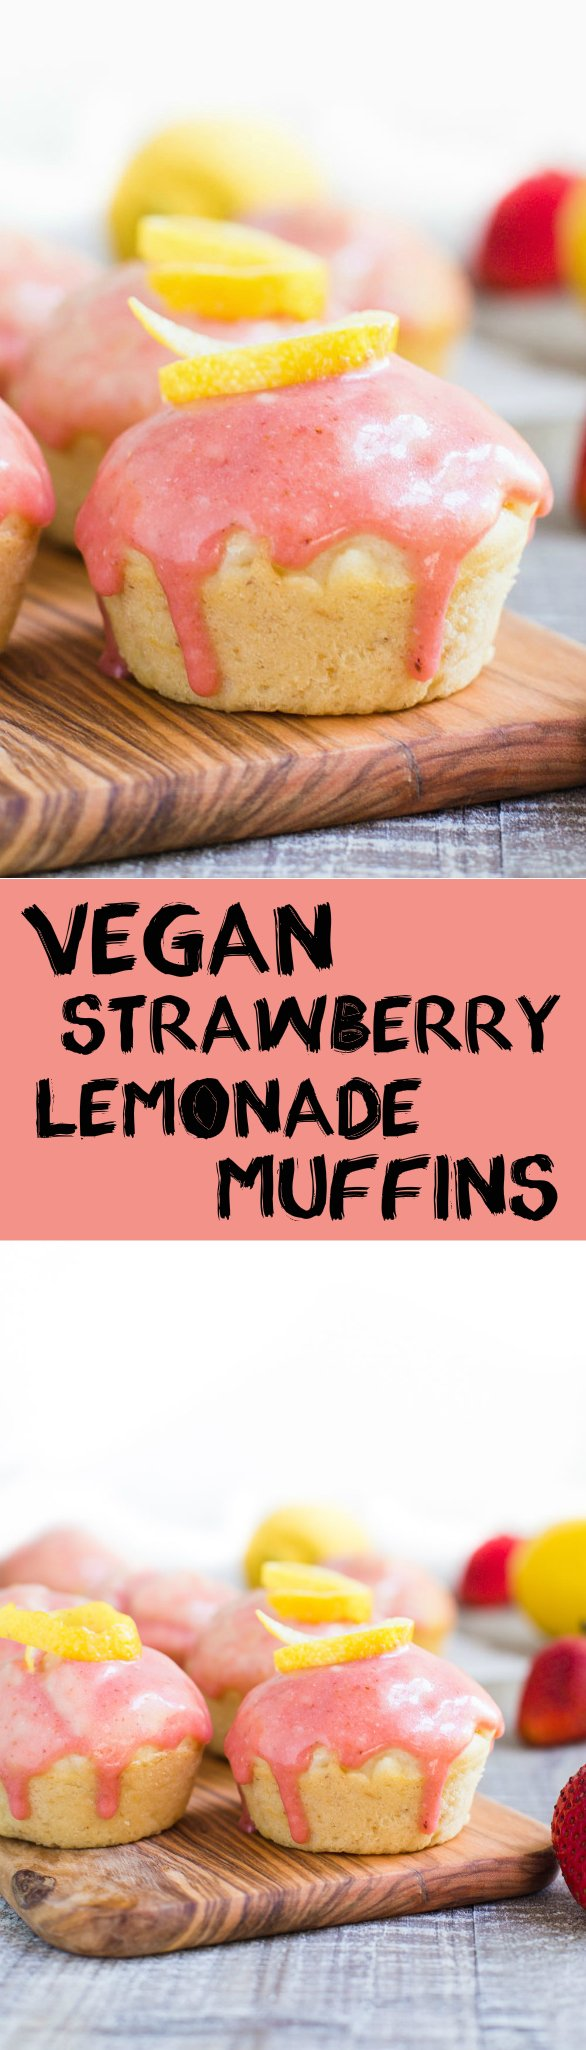 Strawberry Lemonade Muffins- this recipe is VEGAN and very easy to make. Perfect for summer treats and something the whole family will love.